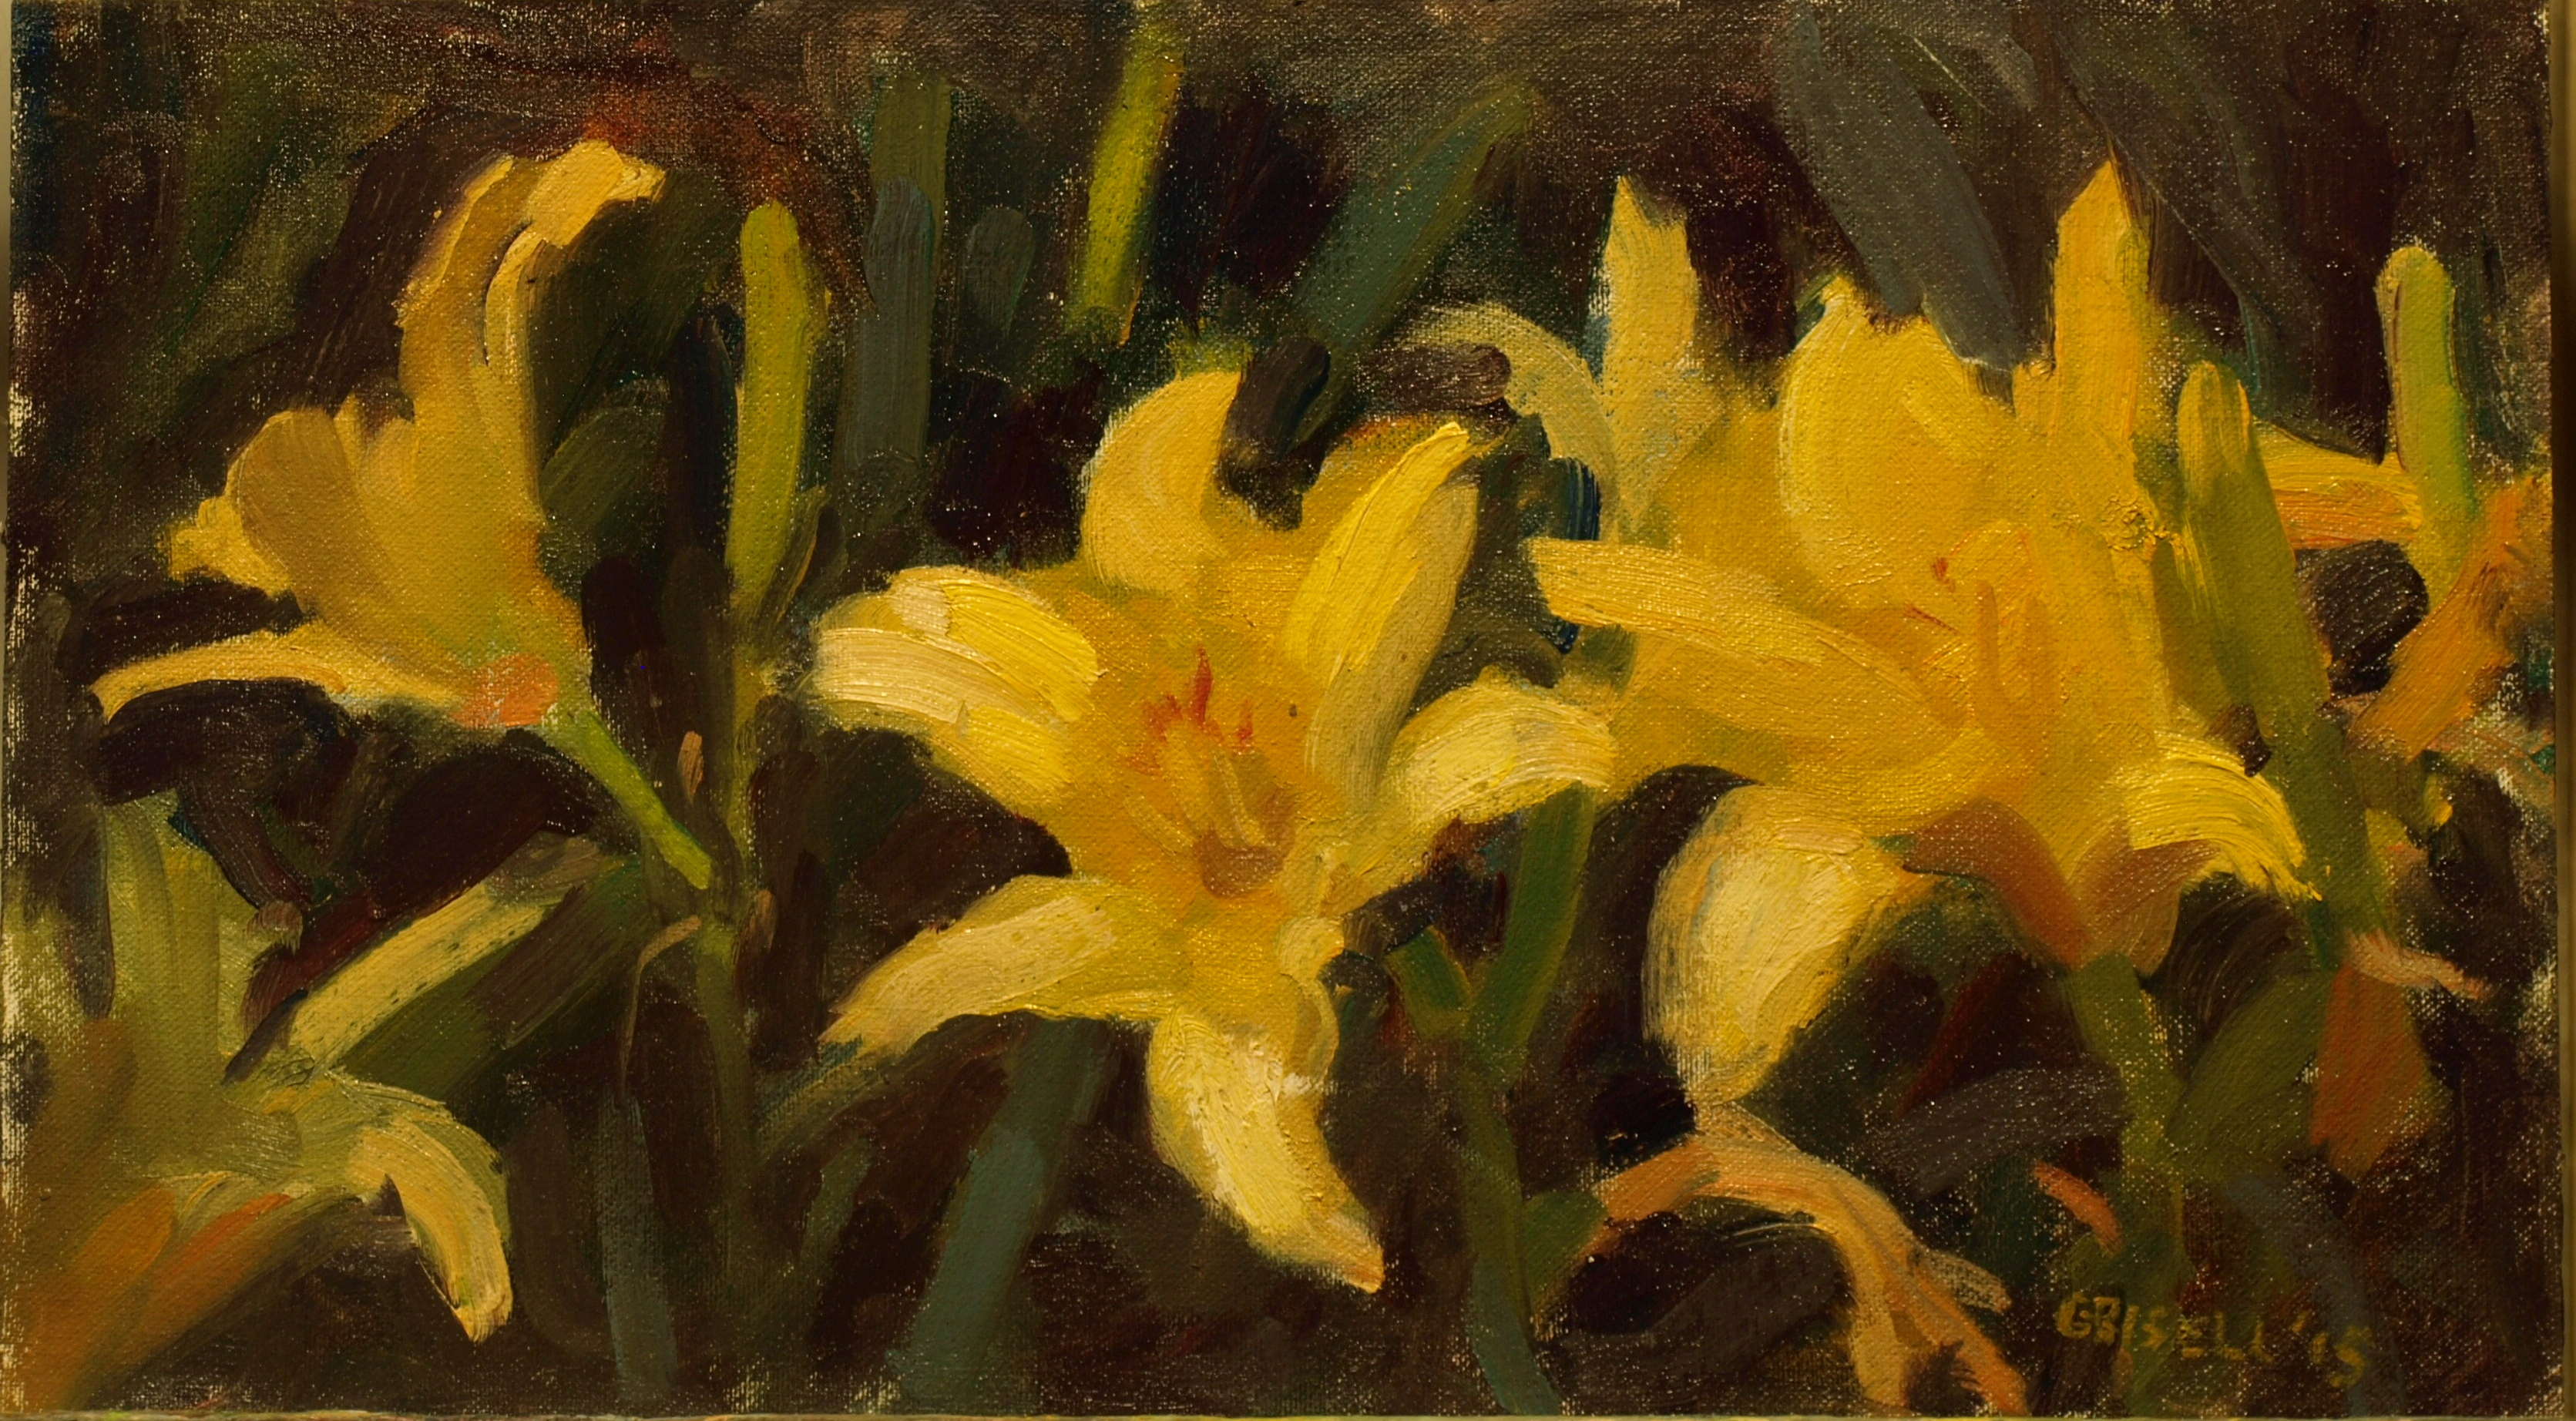 Daylilies, Oil on Canvas on Panel, 9 x 16 Inches, by Susan Grisell, $275